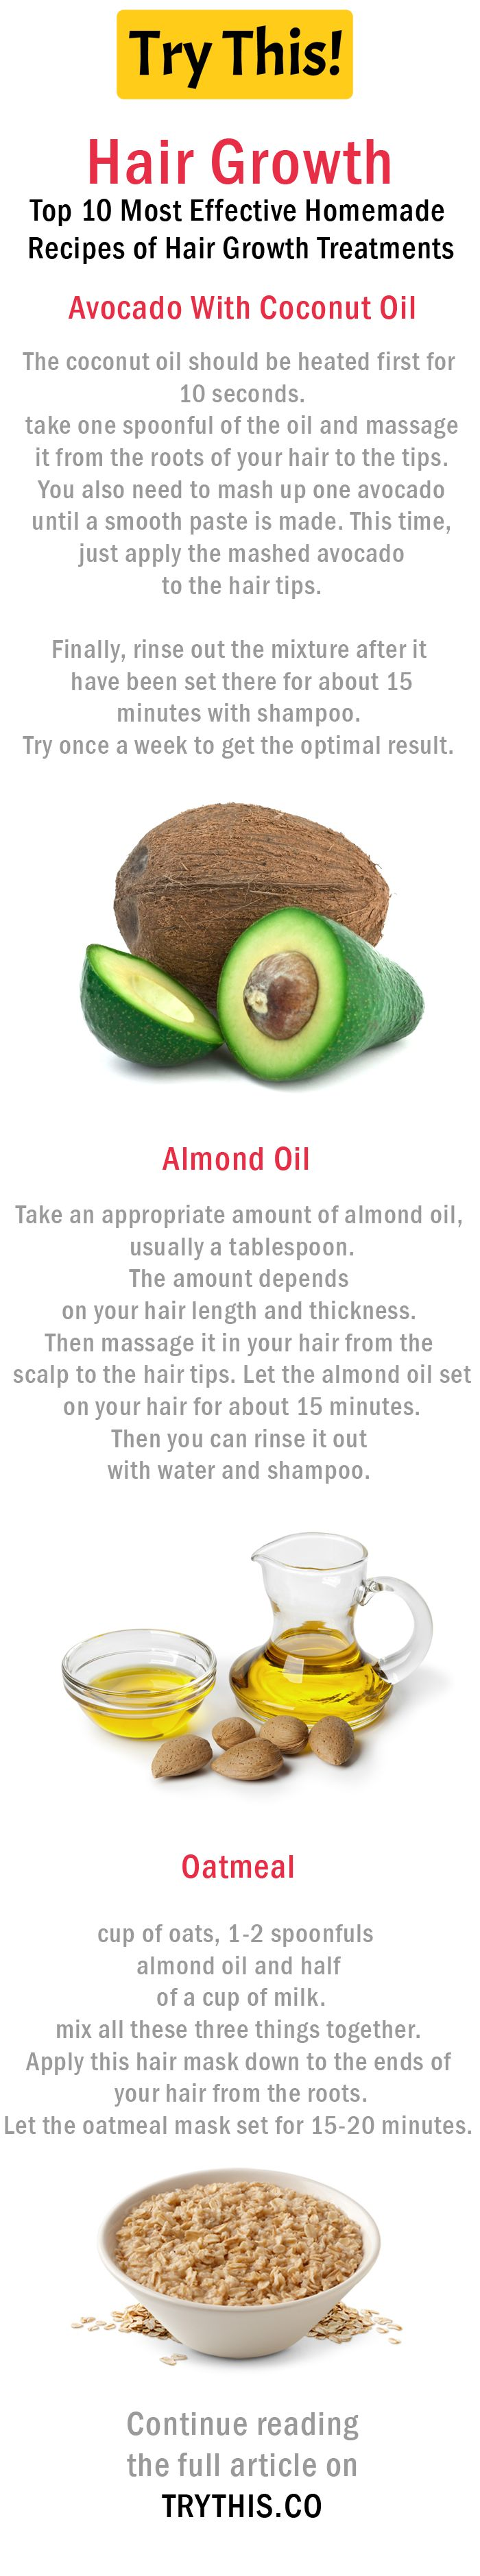 Hair Growth: Help Your Hair Regrowth With These Homemade Treatments